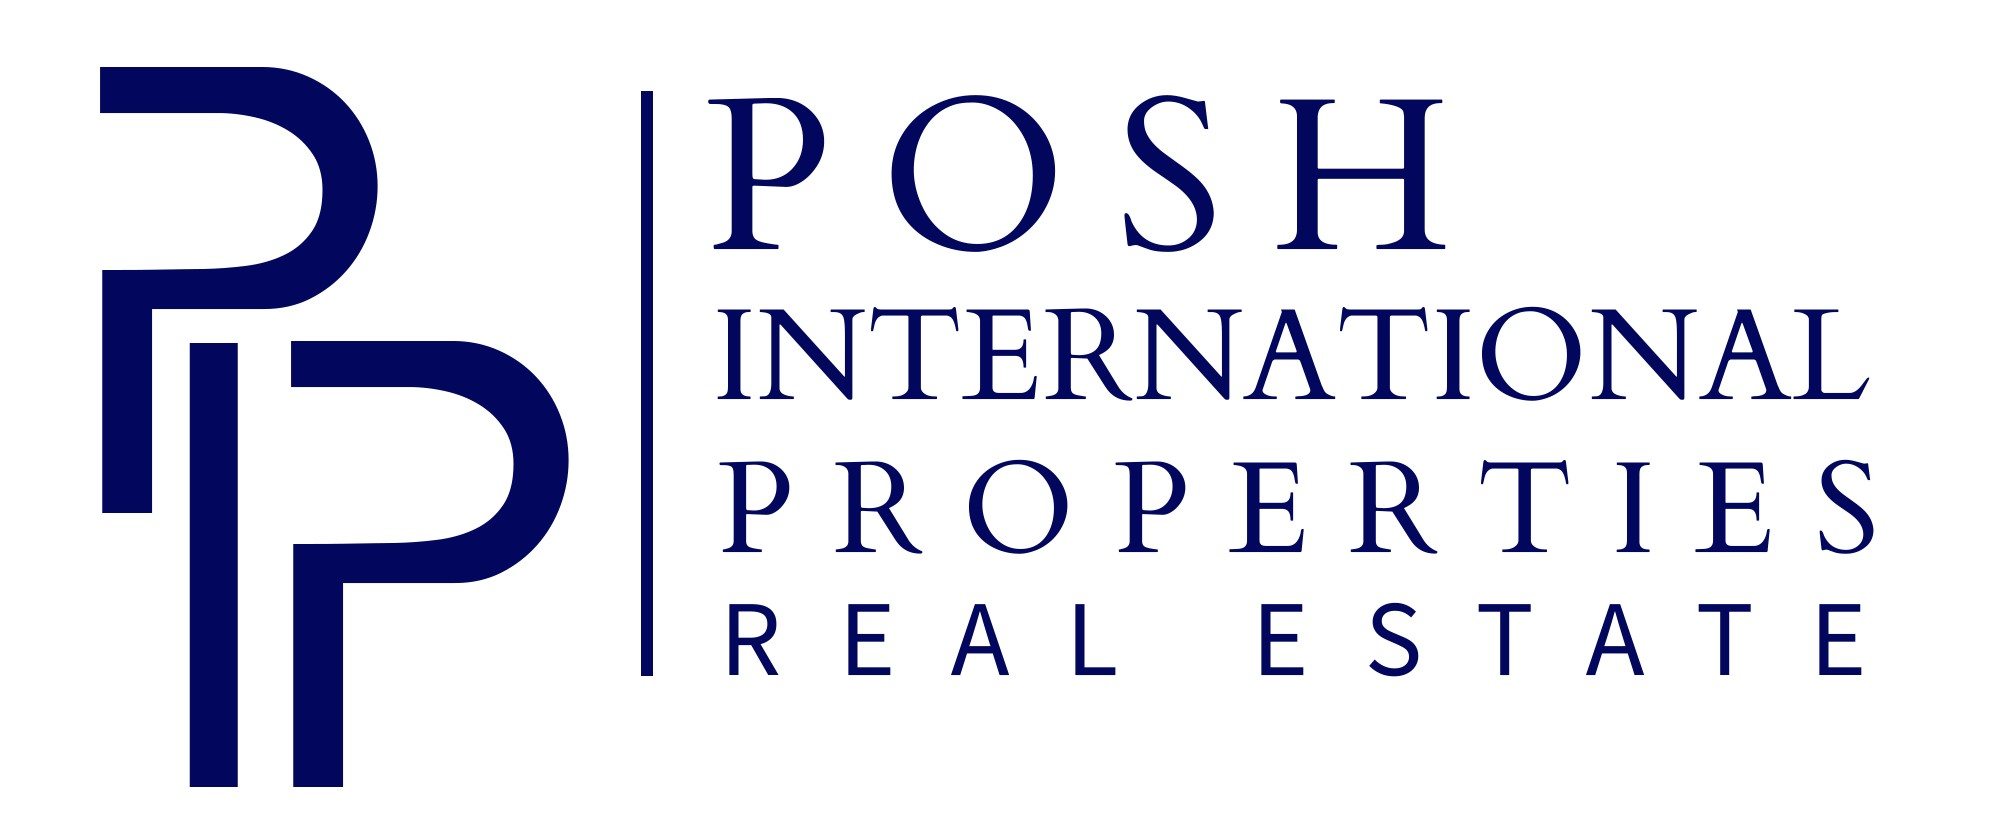 Posh International Properties - Immobilien Florida: Deutscher Makler Florida, Immobilienmakler Florida, Hausmakler Florida, Wohnungsmakler Florida, Luxusmakler Florida, Villenmakler Florida